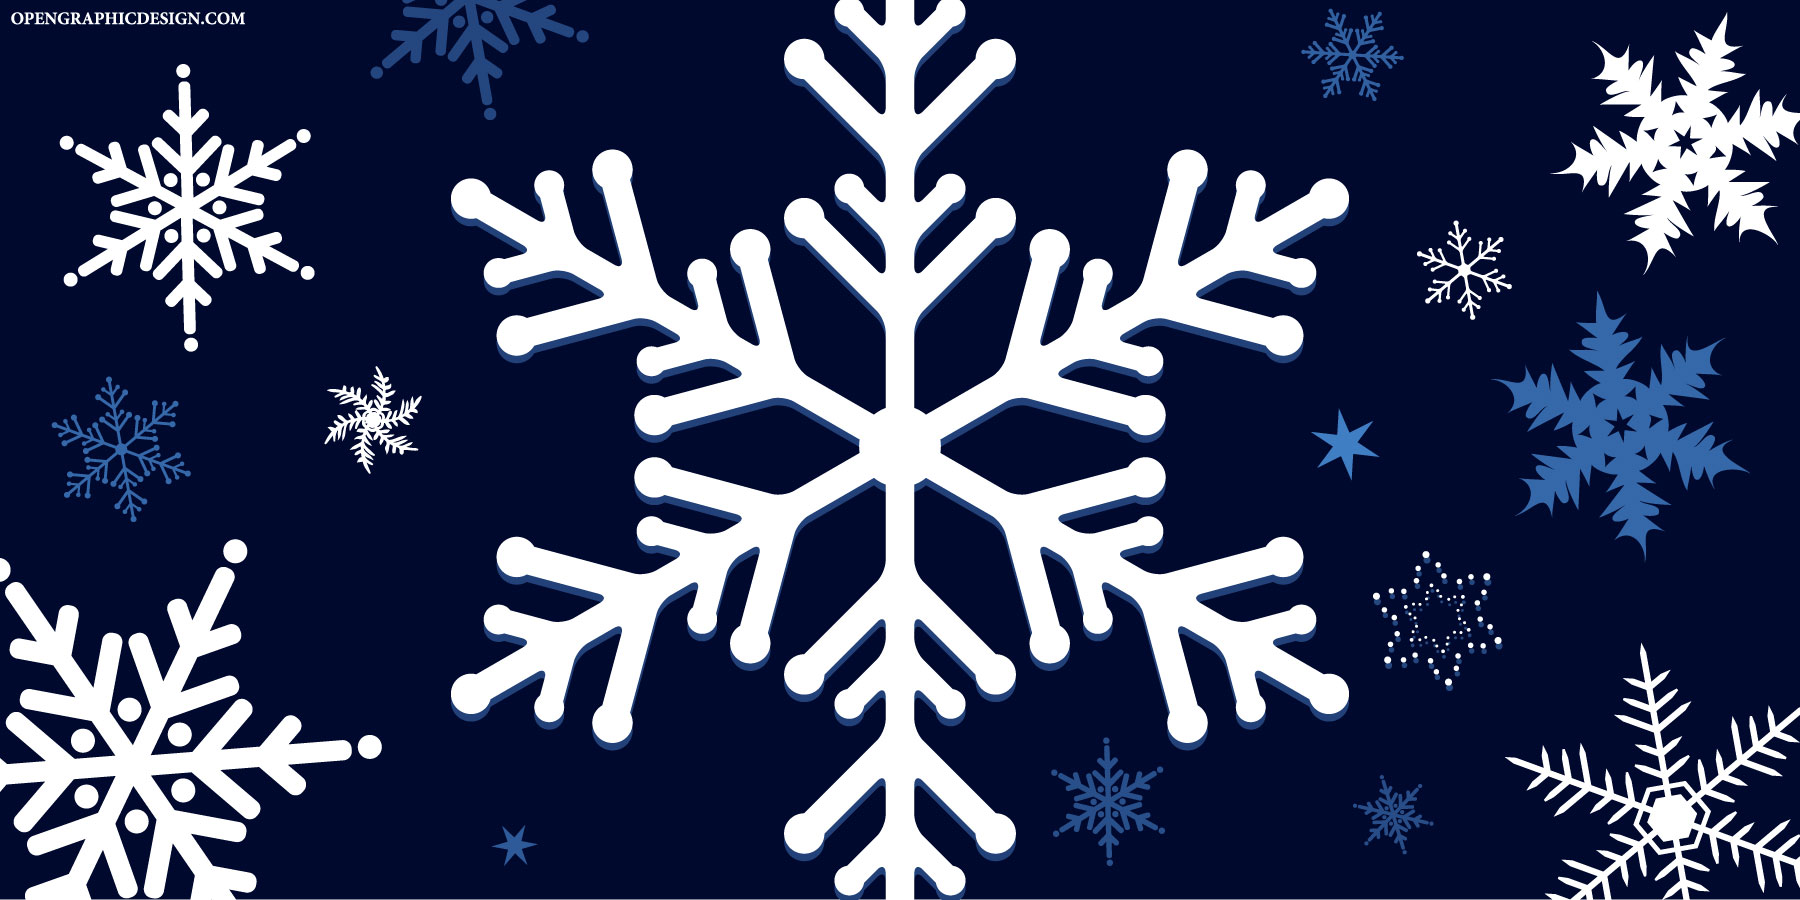 Free winter graphics clipart picture black and white Free Vector Snowflakes, download winter snow flakes clip art, winter ... picture black and white